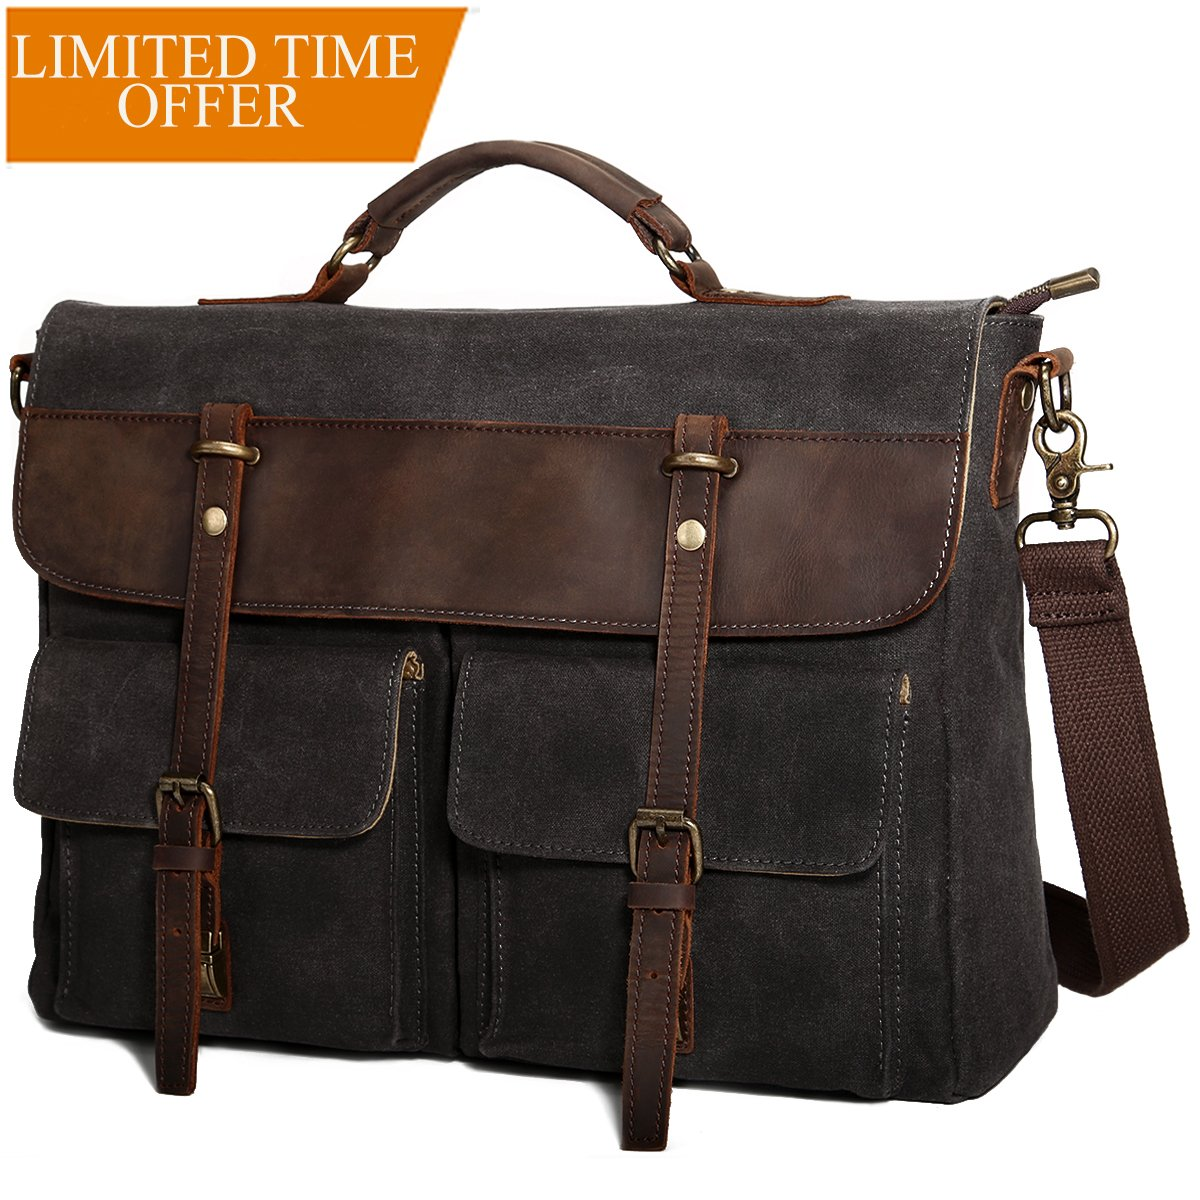 Large Messenger Bag for Men Tocode, Vintage Waxed Canvas Satchel Leather Briefcases Crossbody Shoulder Bags, 15.6 inch Computer Laptop Bags Water Resistant Travel Work Bag (Coffee) Tocode-1038-Coffee